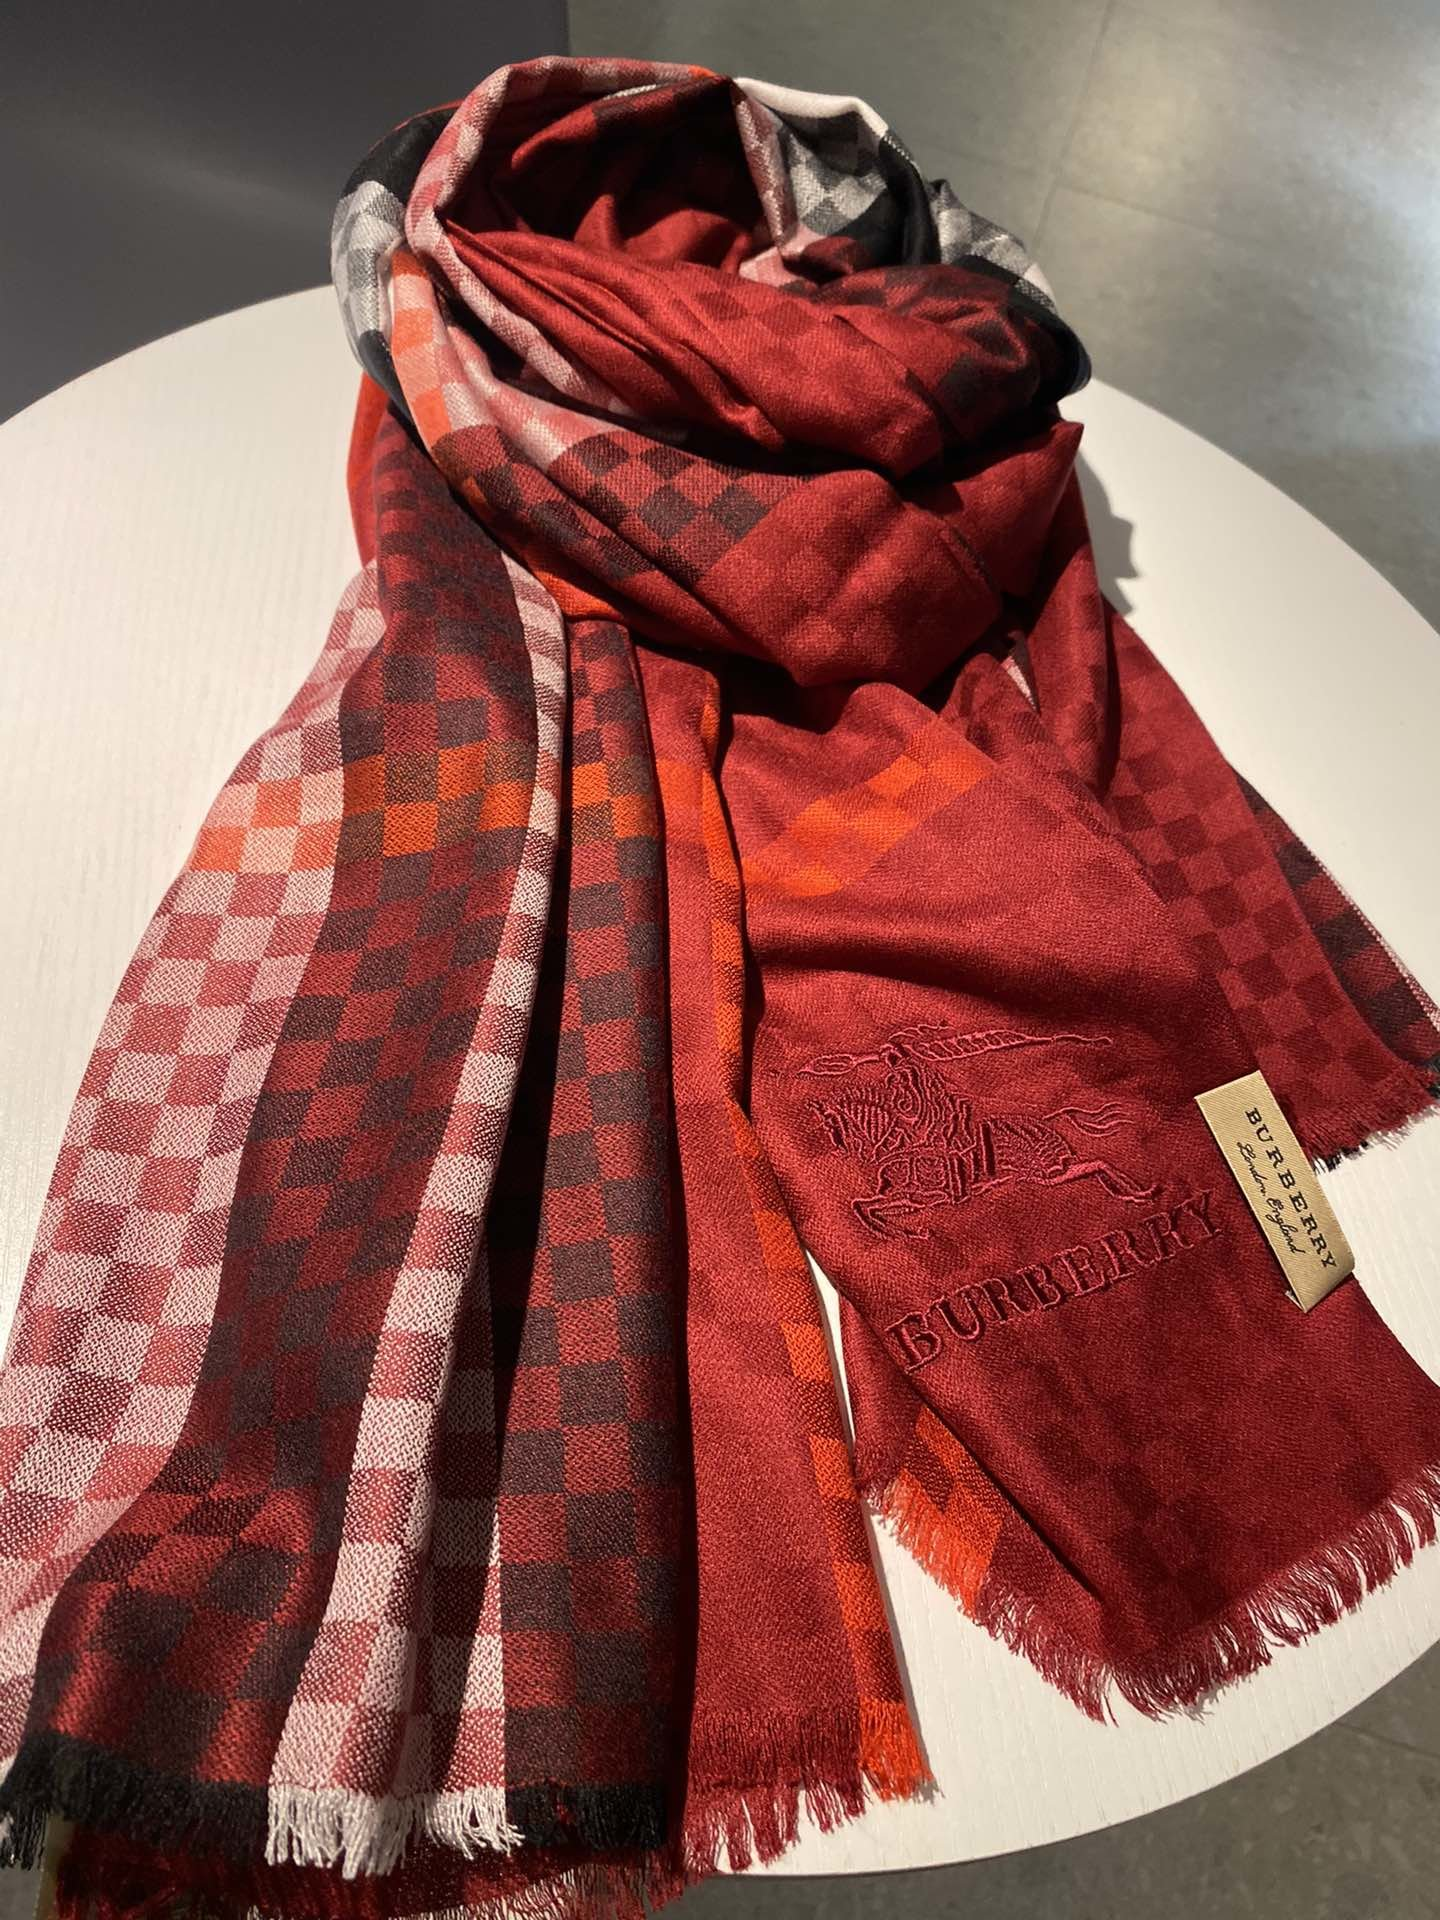 Cheap Replica Burberry Women Scarf 0017